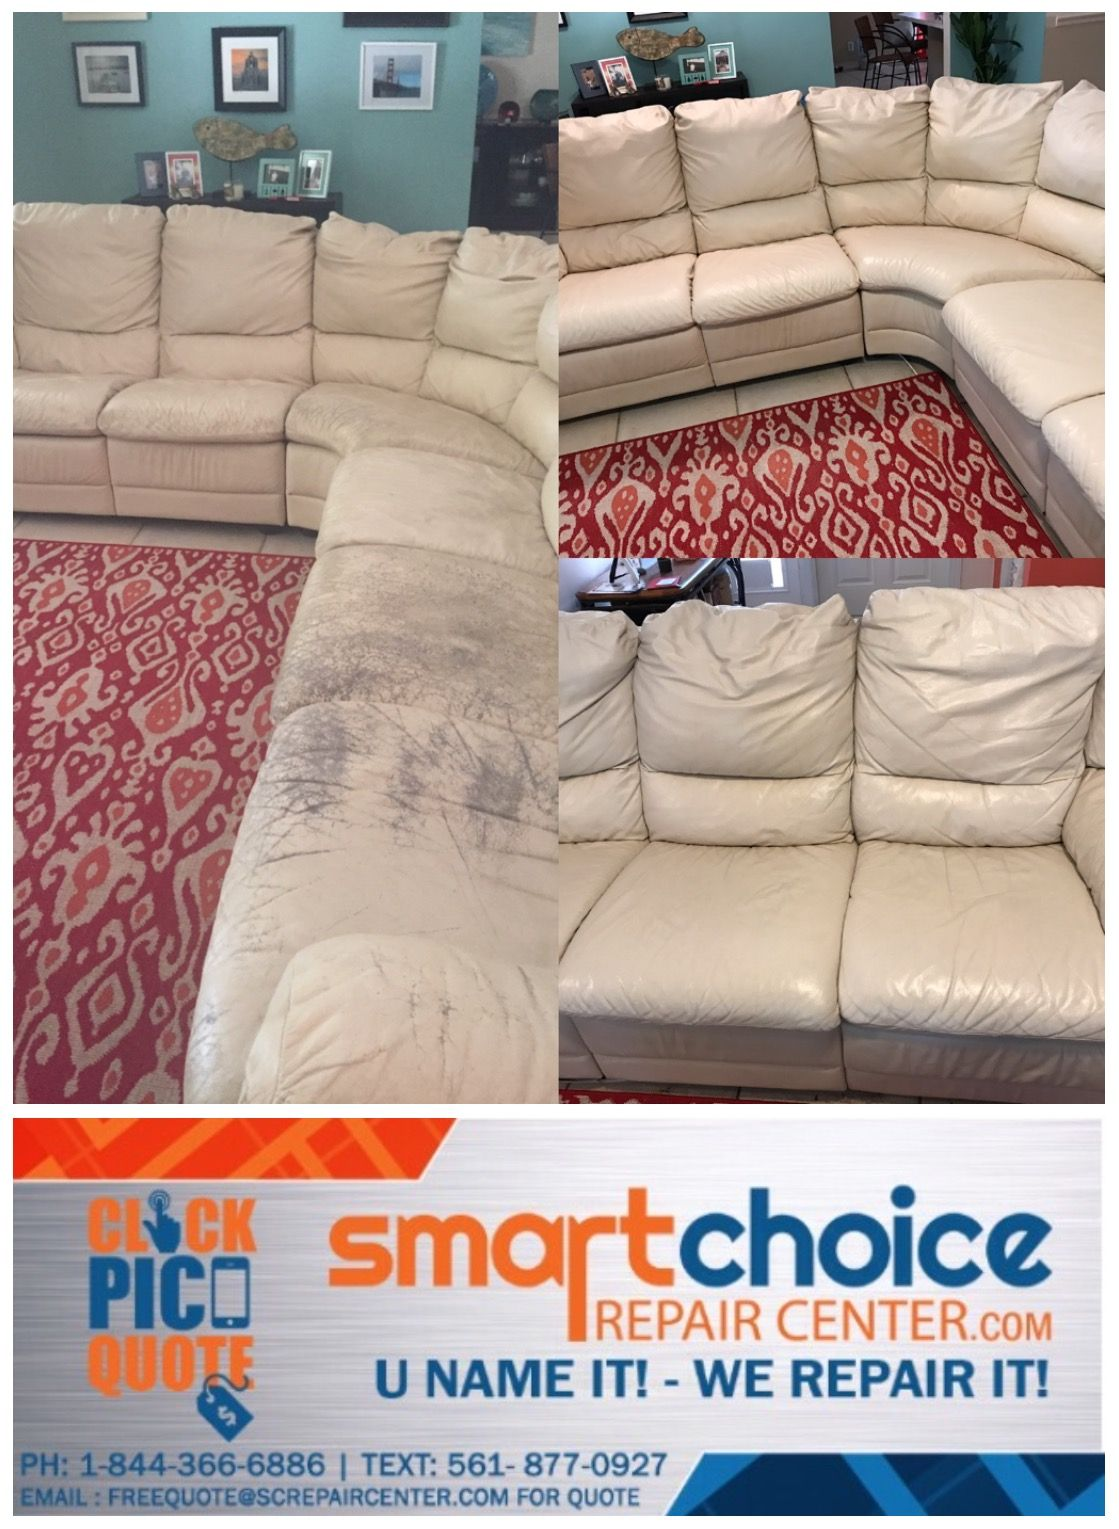 Surprising Has Your Leather Or Synthetic Leather Couch Been Damaged Machost Co Dining Chair Design Ideas Machostcouk